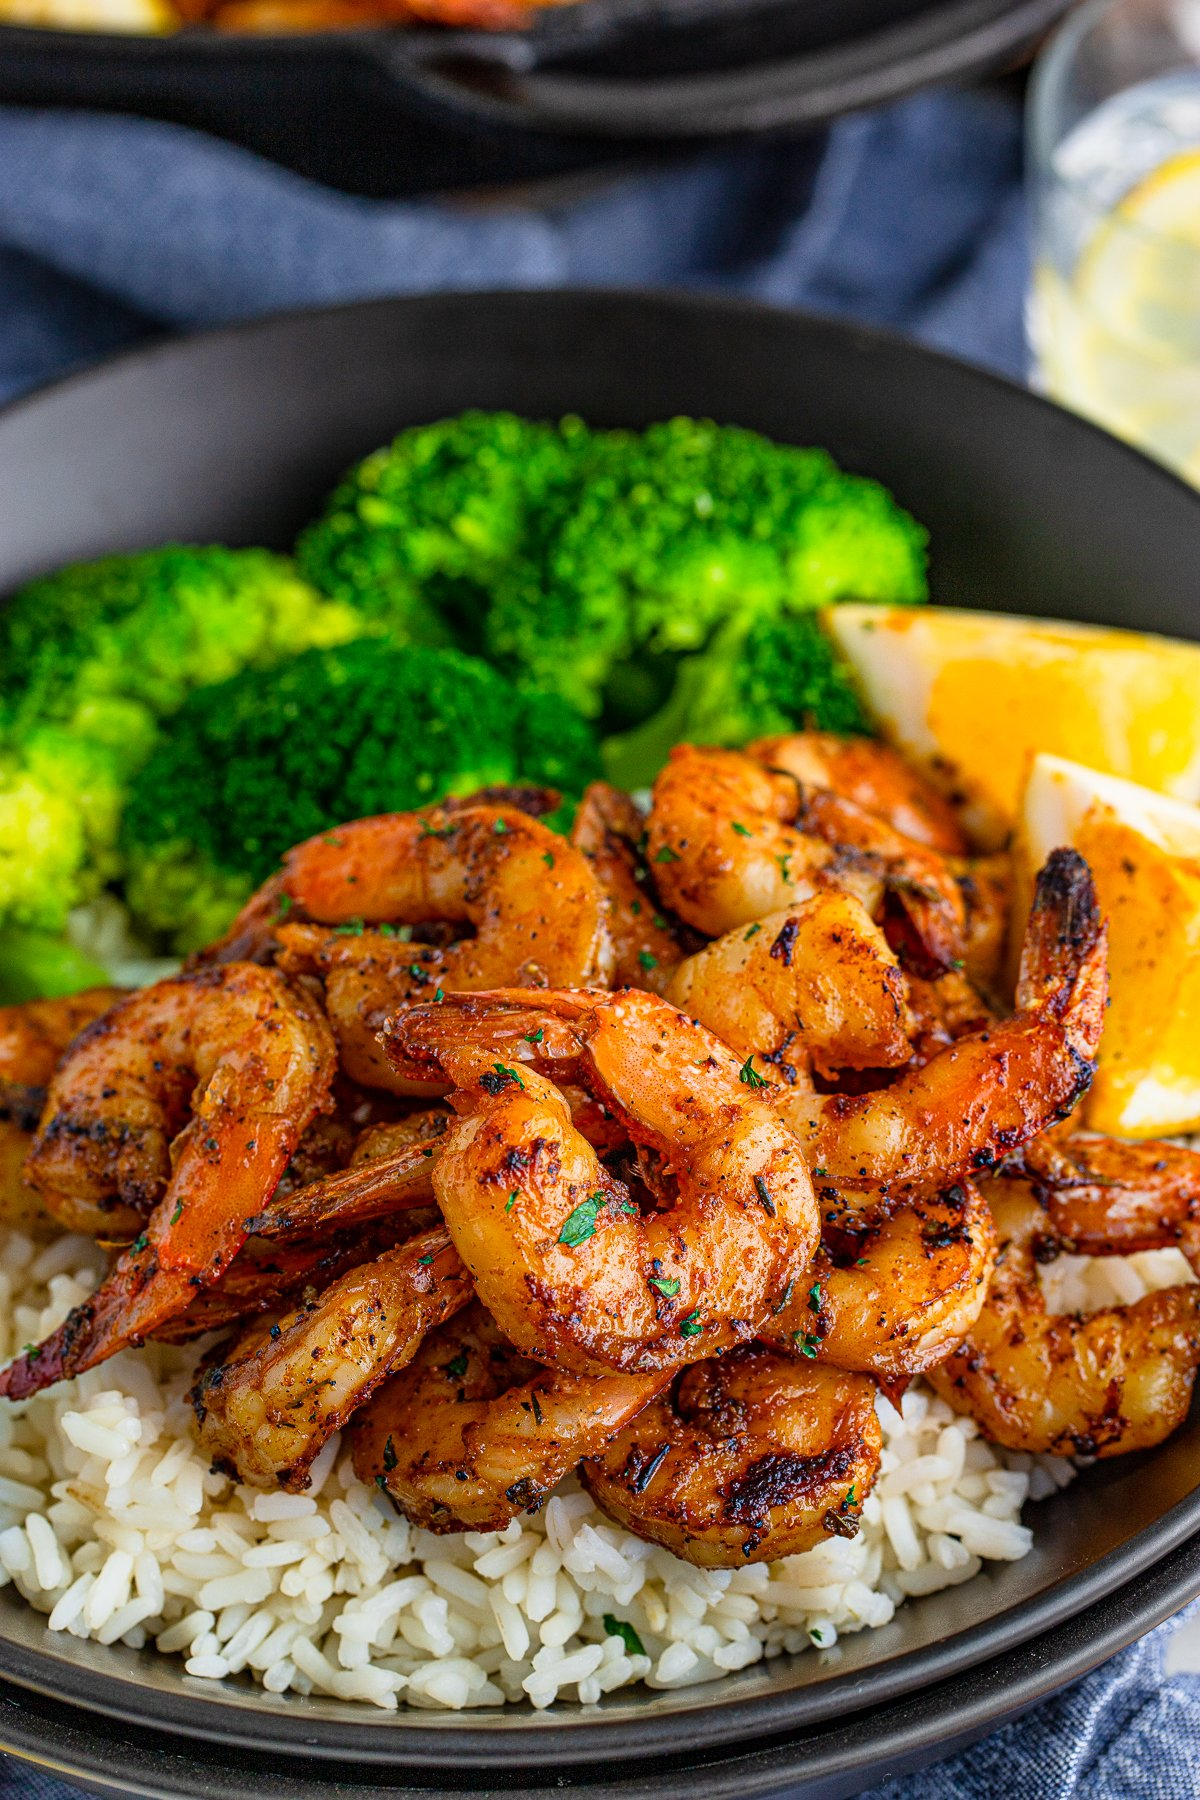 Blackened Shrimp over rice on plate with broccoli and lemon